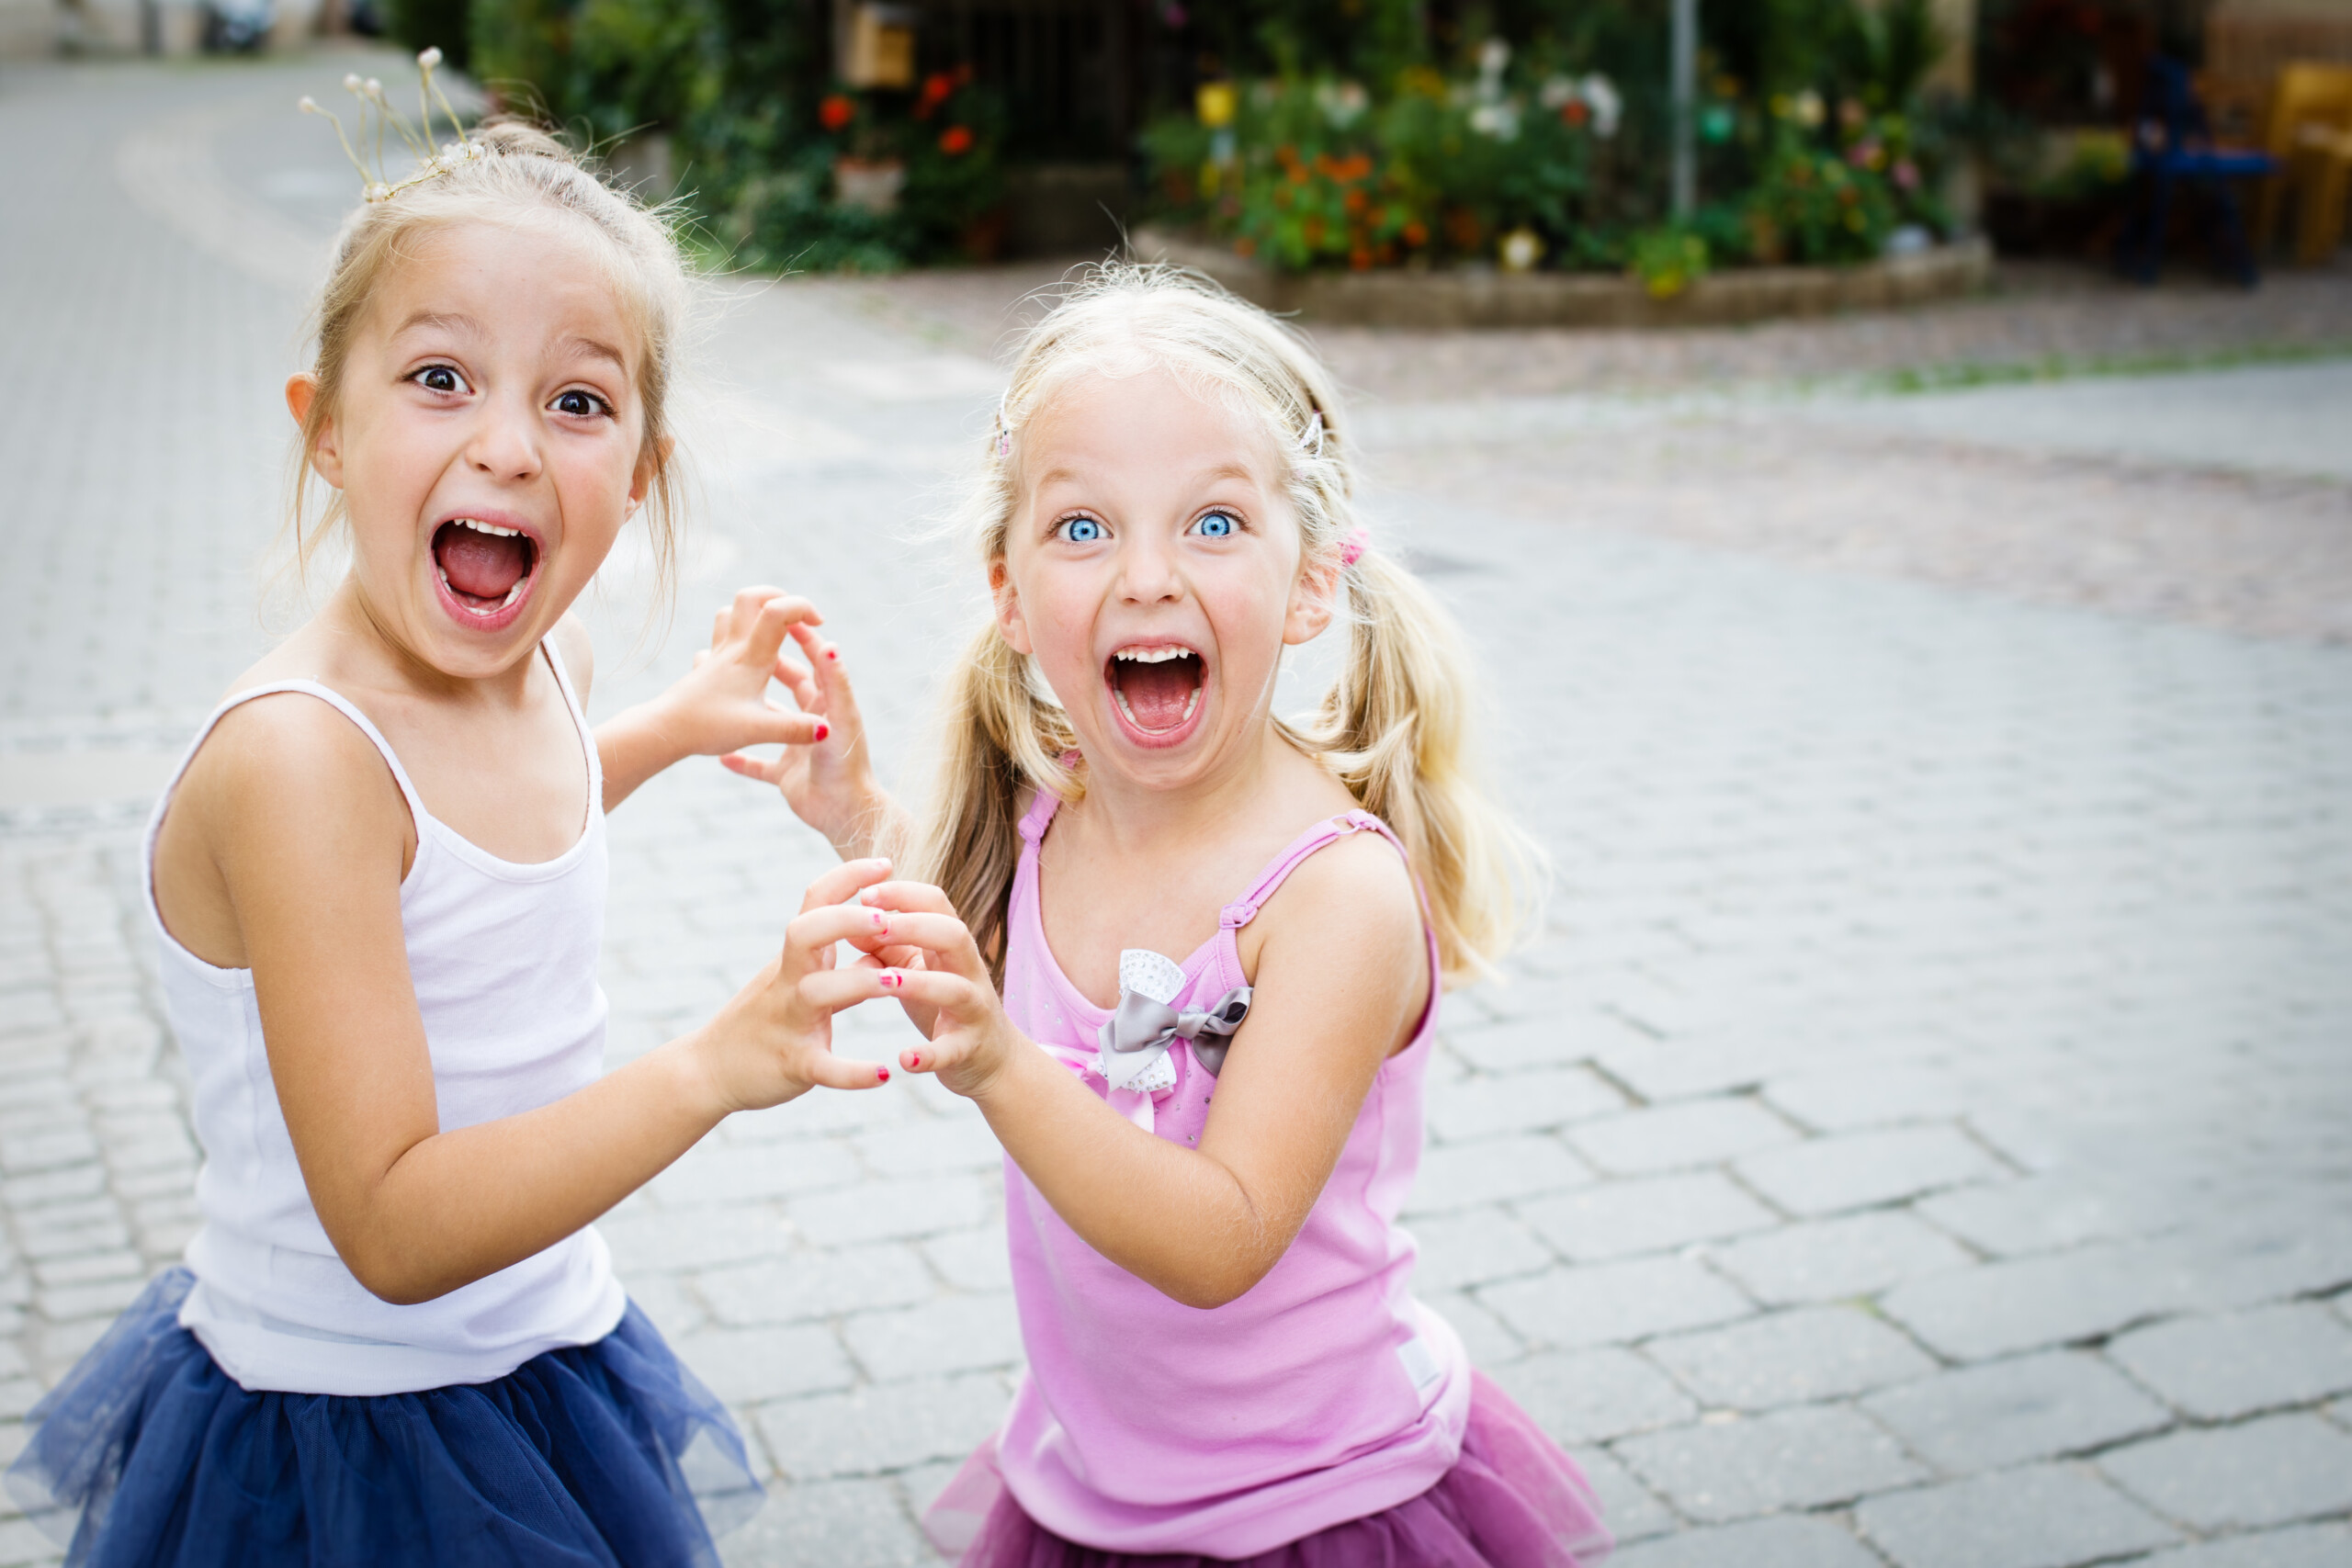 At What Age Should Kids Stop Screaming While Playing?